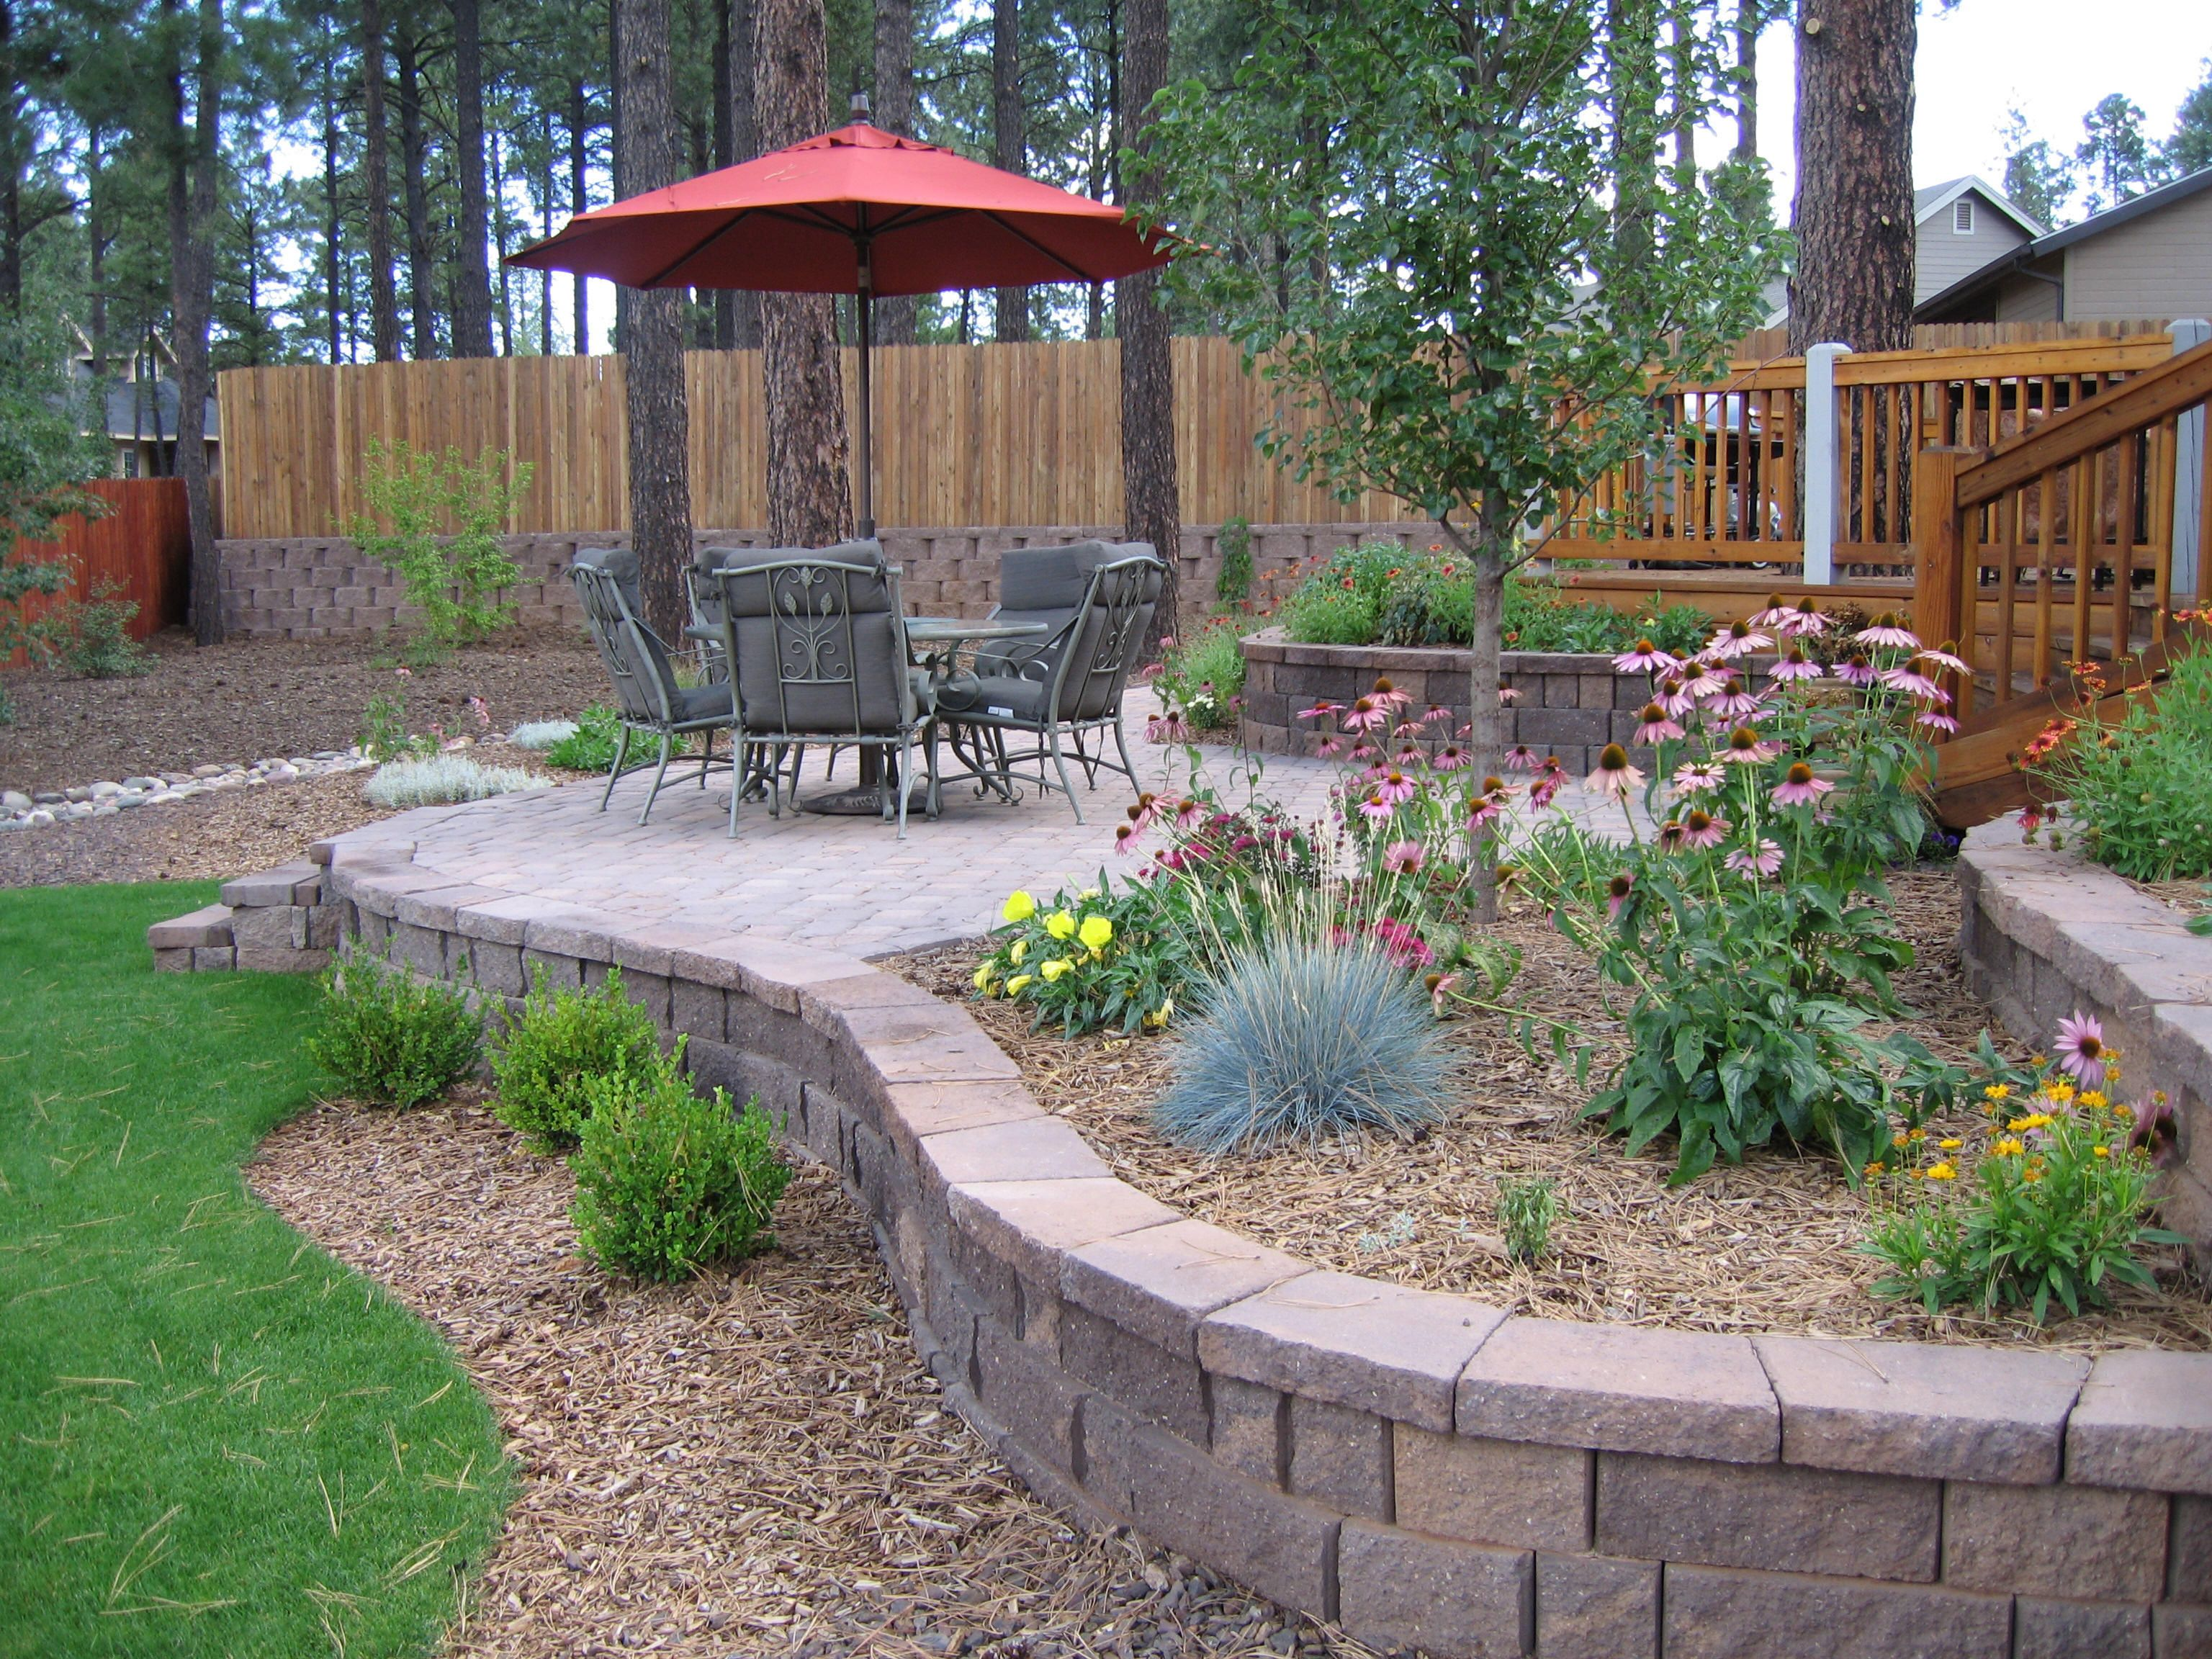 gardening landscaping nice backyard landscape ideas best backyard landscape ideas landscaping backyard ideas kid friendly backyard landscaping ideas - Backyard Landscape Design Ideas